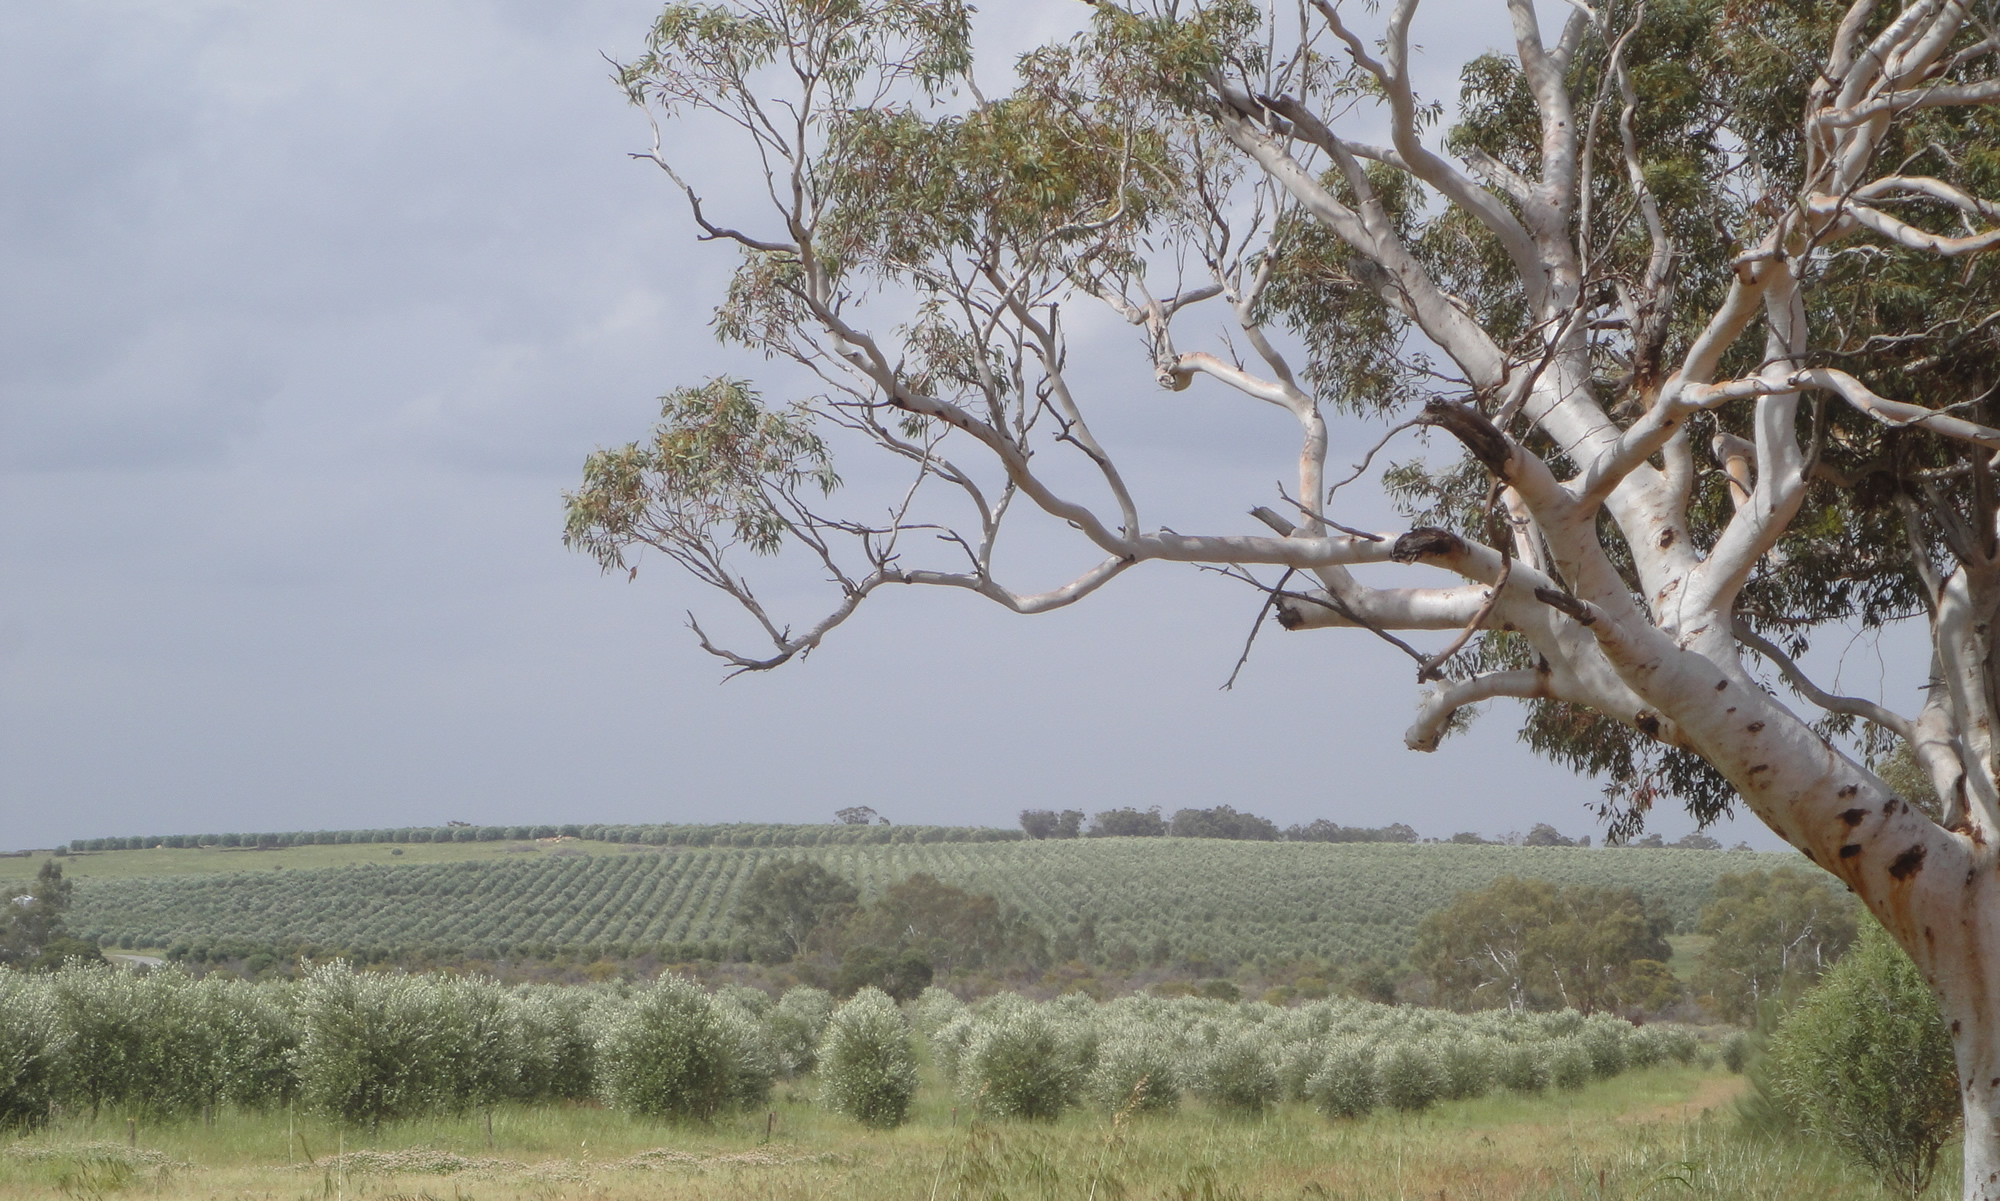 Olives in Western Australia